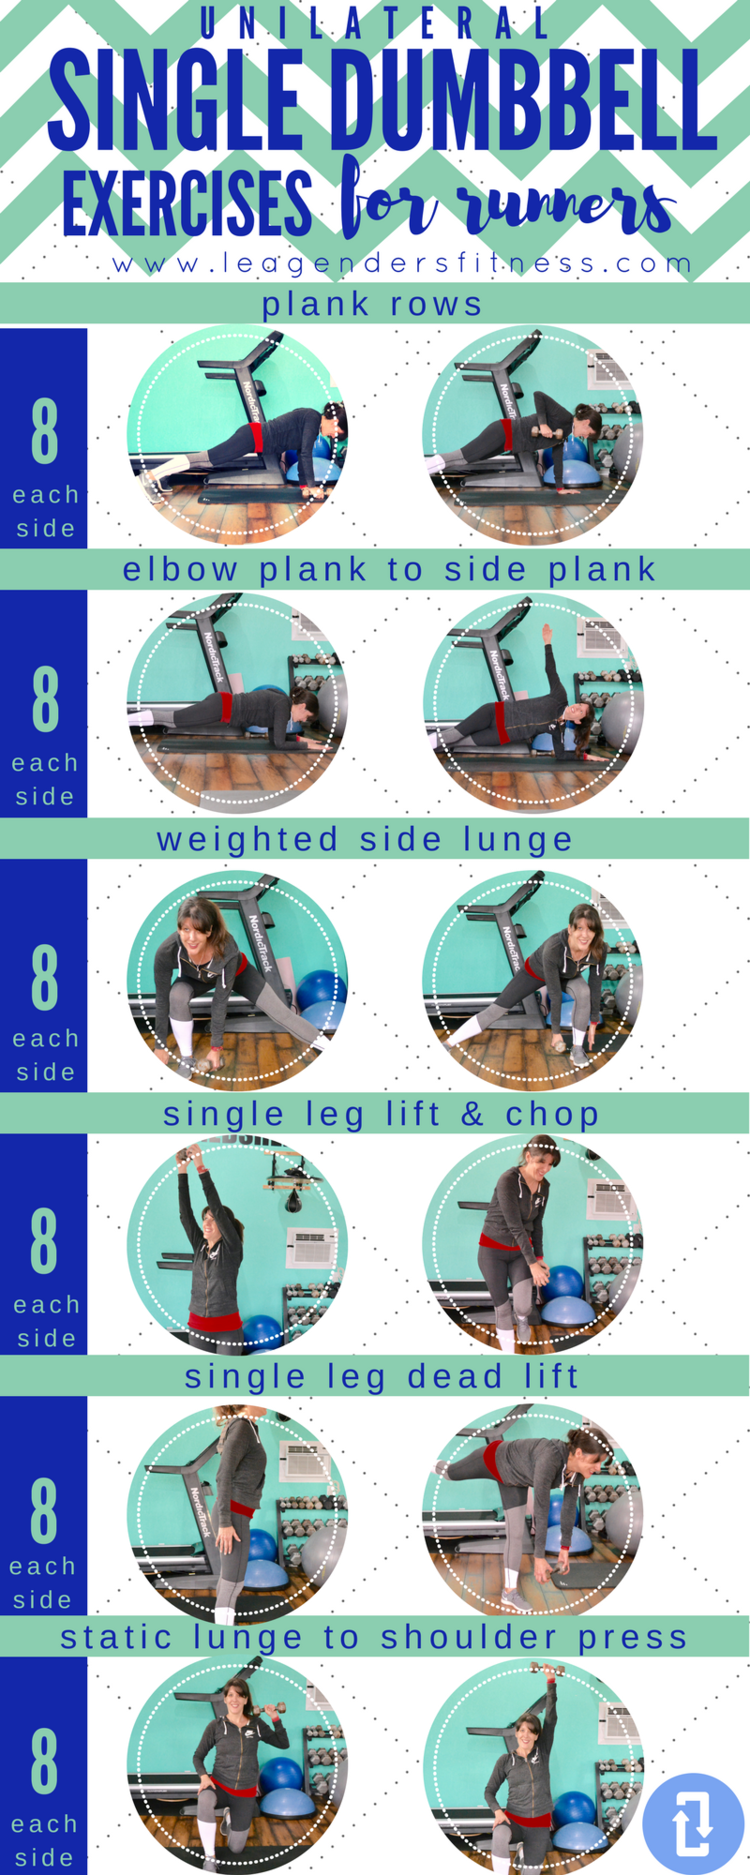 Unilateral Single Dumbbell Exercises for Runners — Lea Genders Fitness